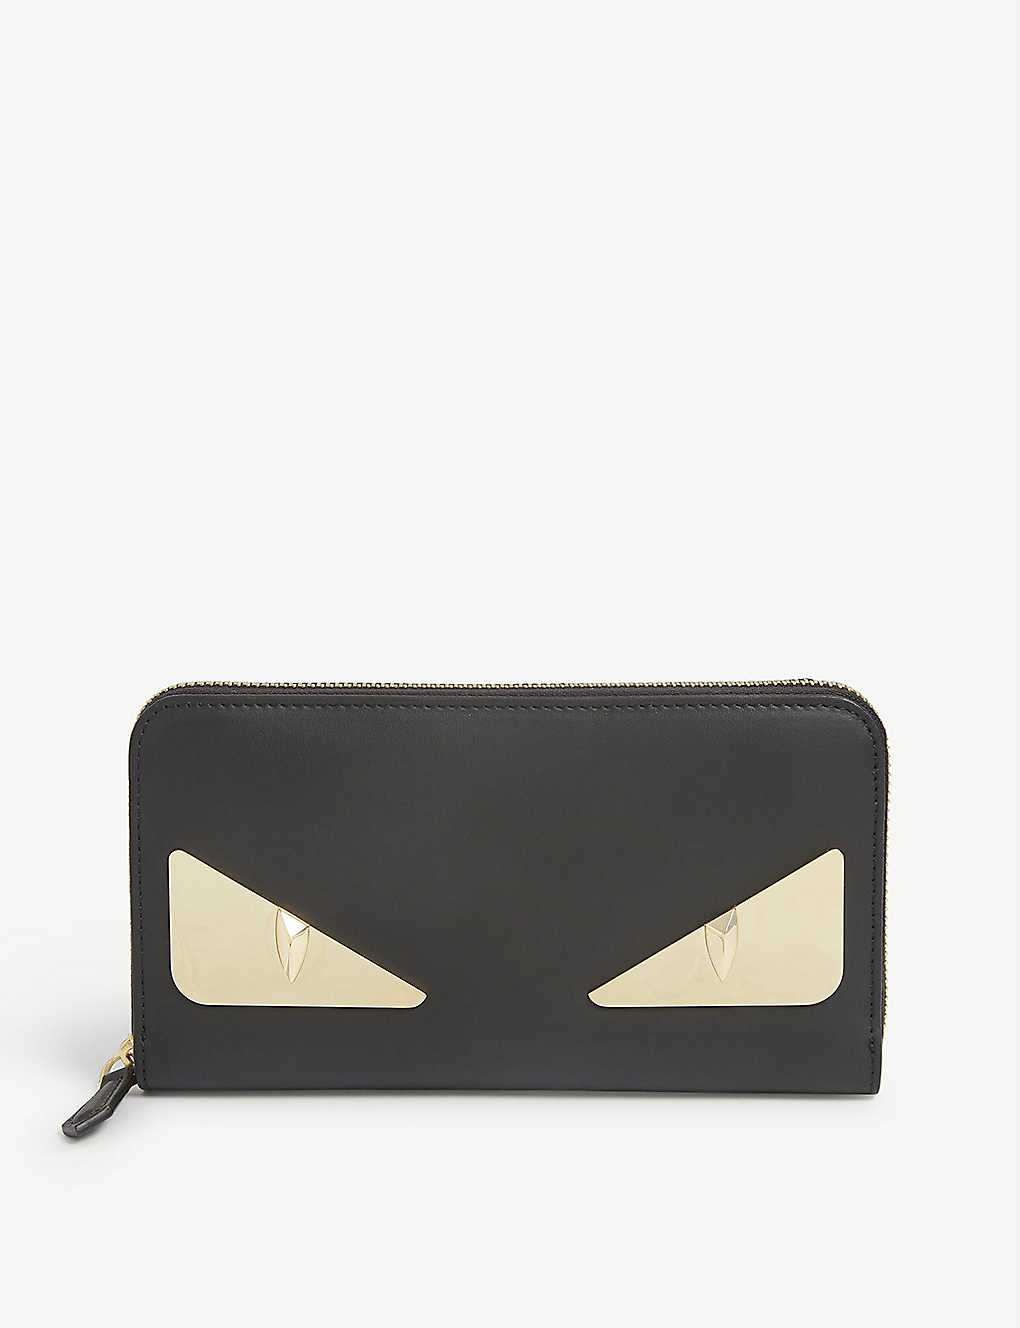 FENDI: Bag Bug leather wallet